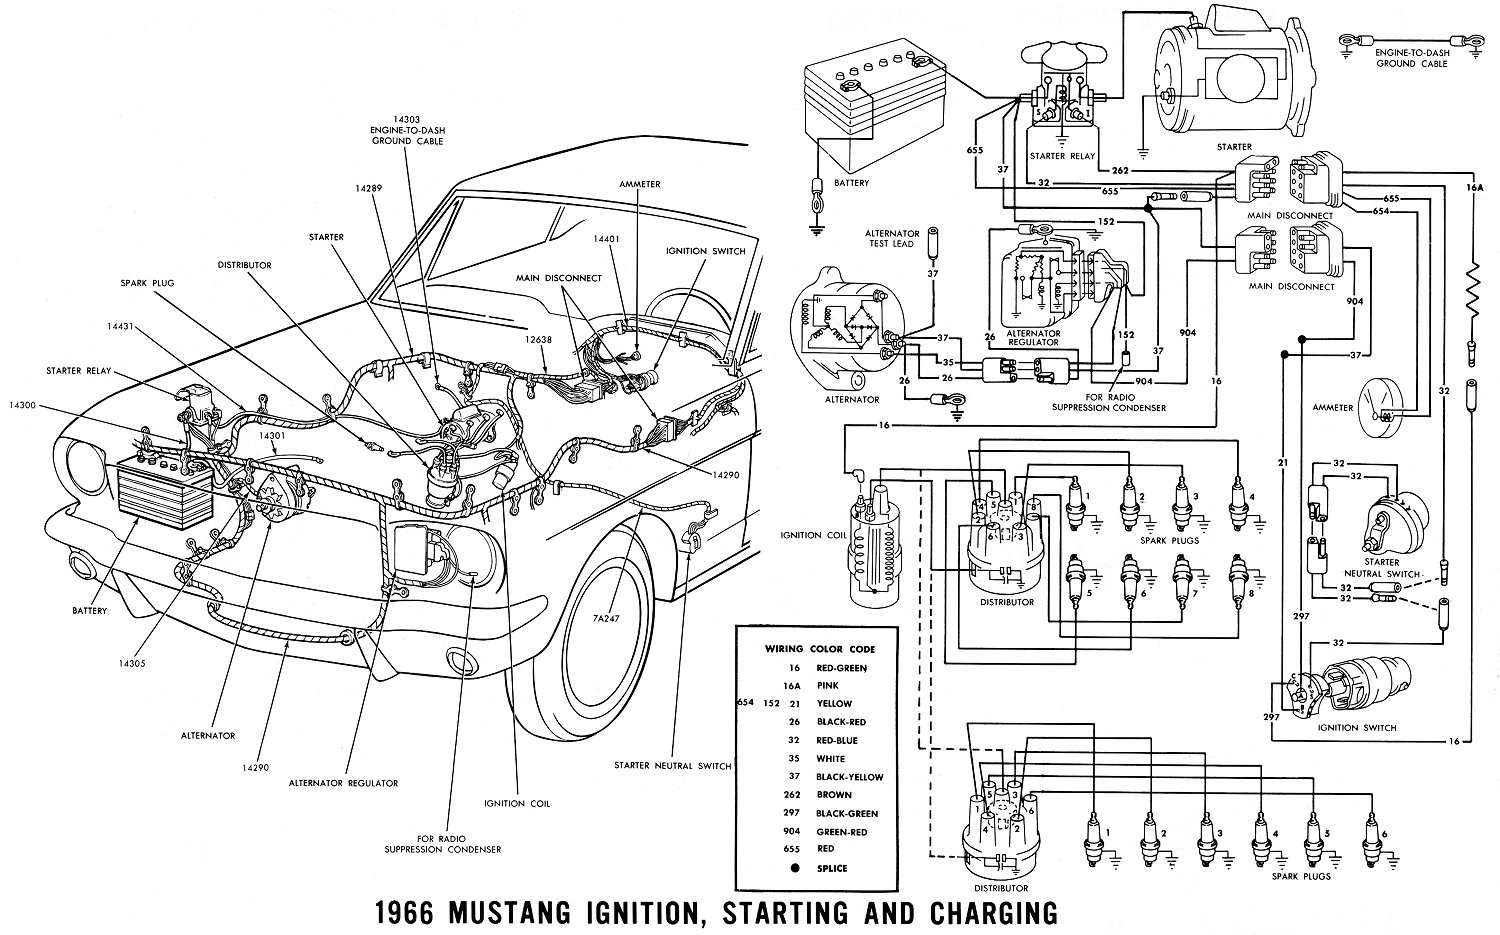 66 mustang ignition wiring diagram 1980 honda cb750f 1966 diagrams average joe restoration starting and charging